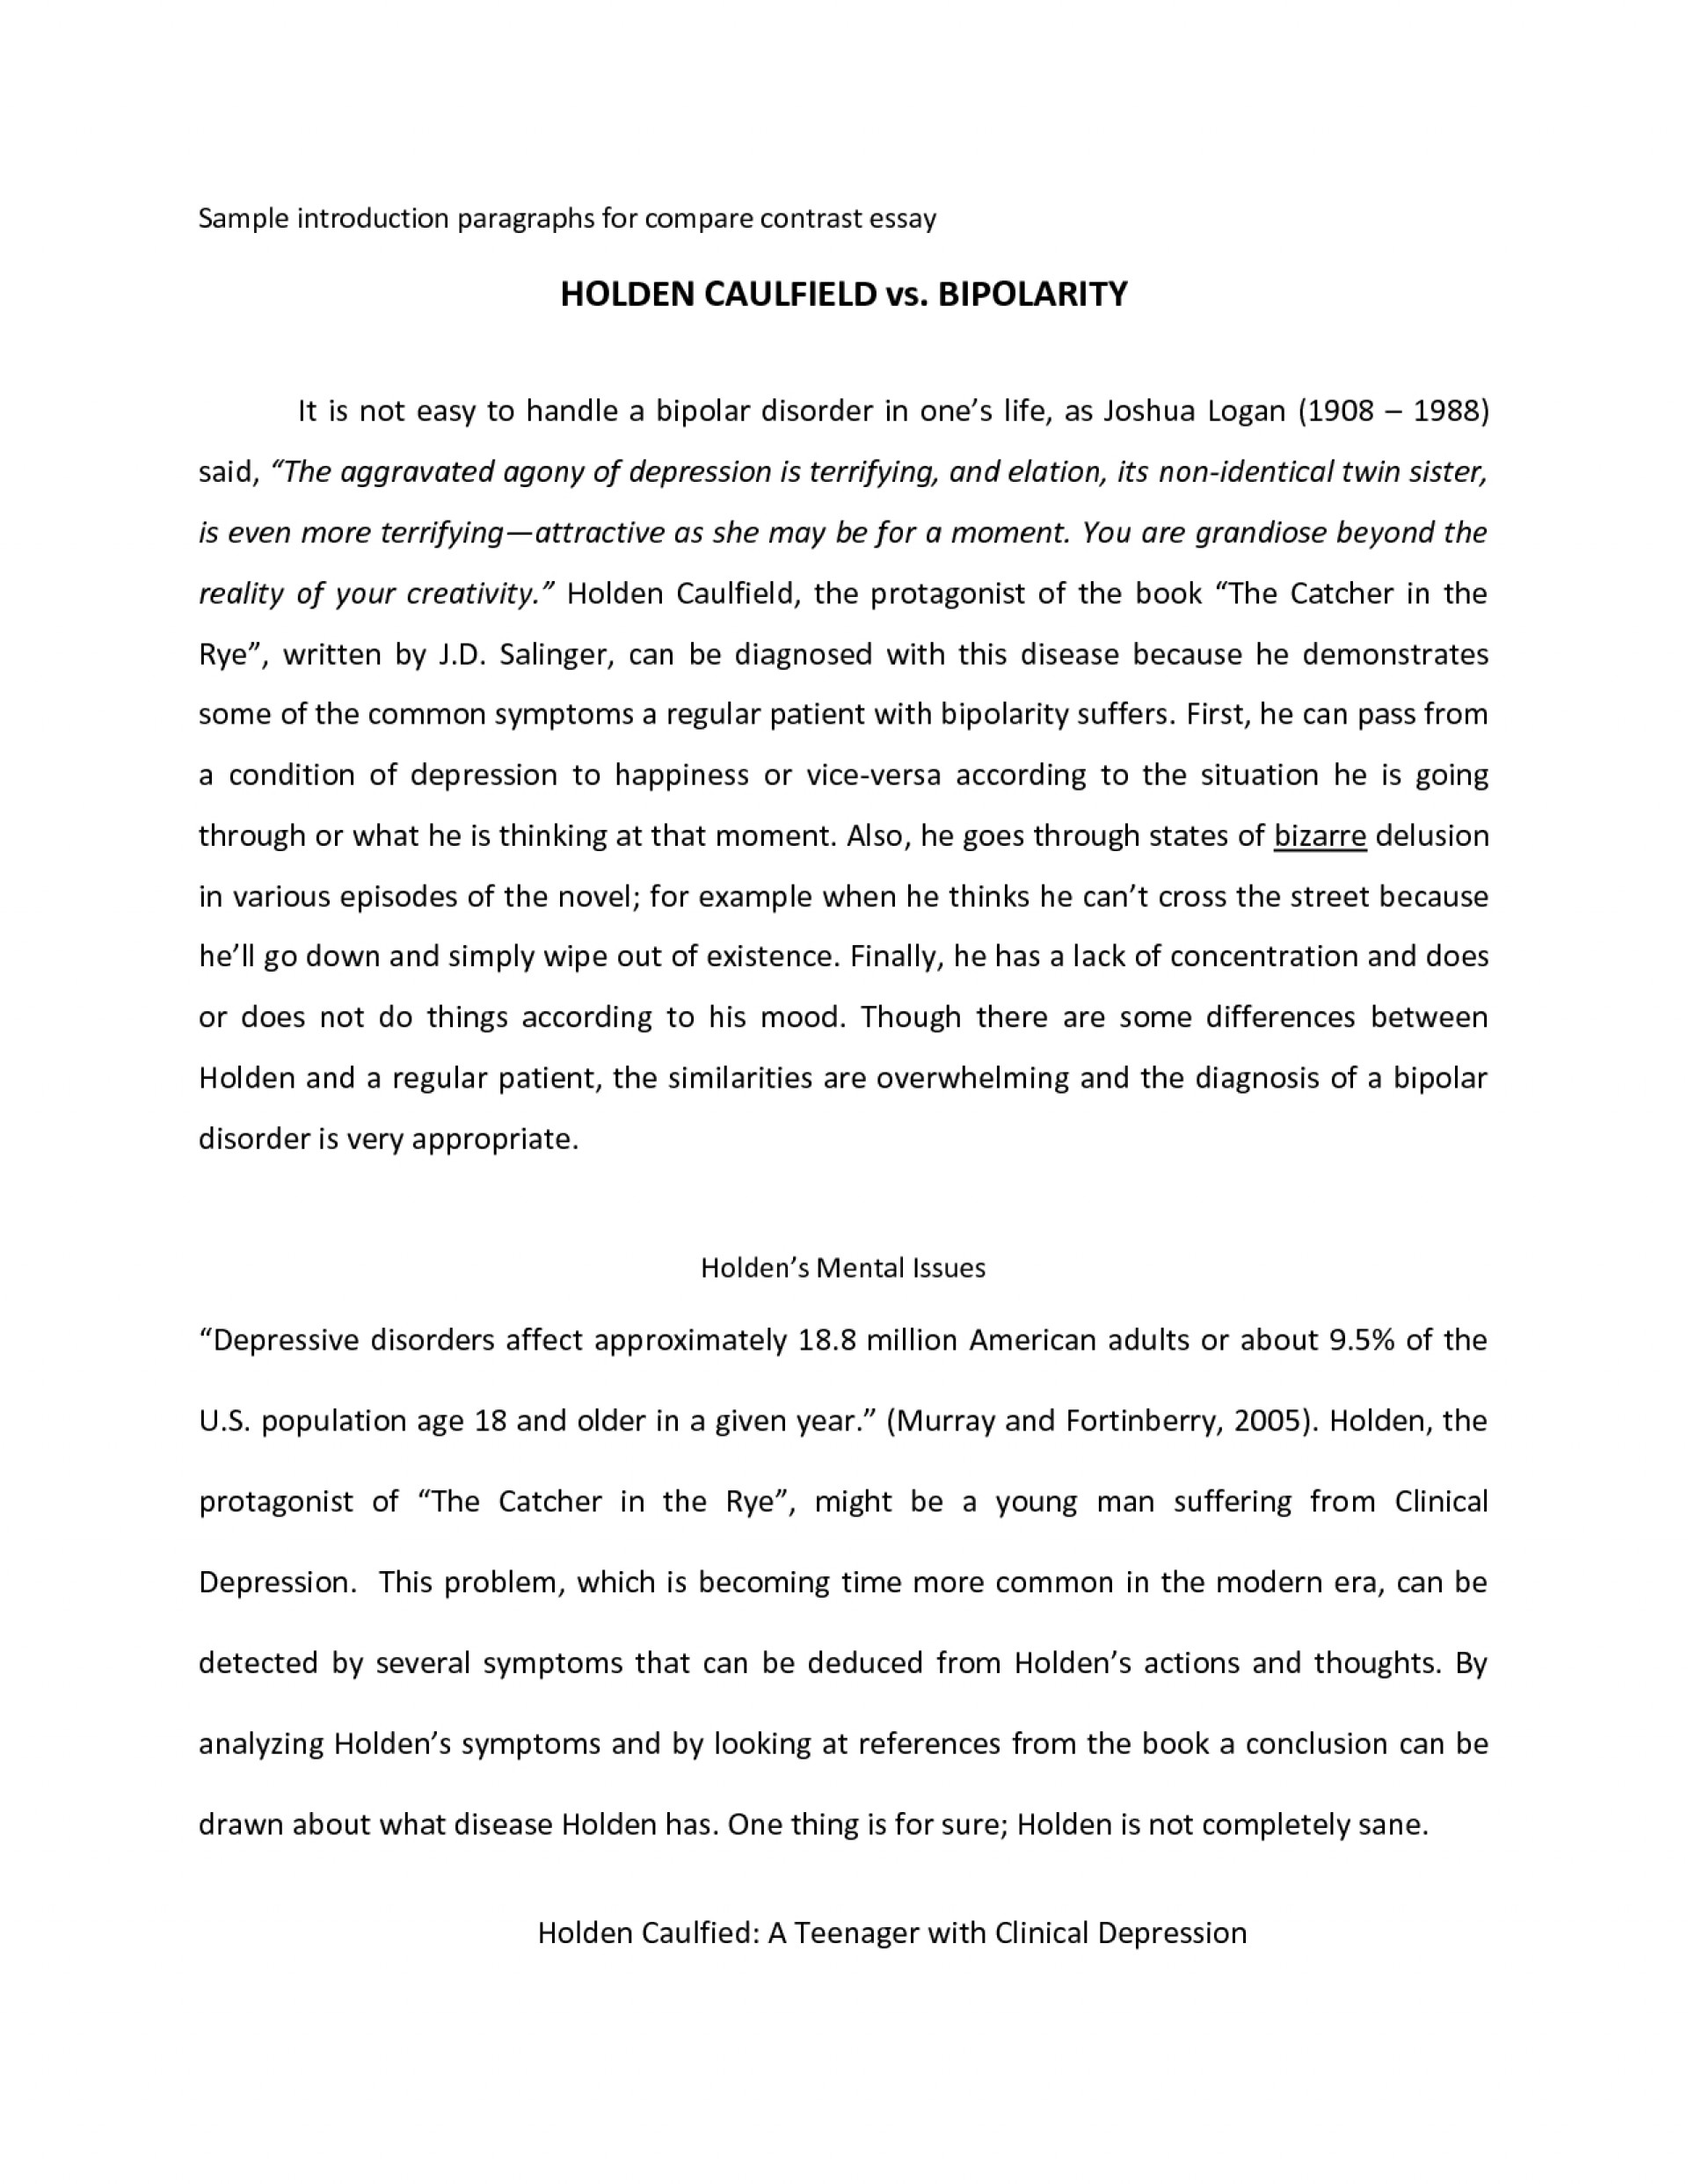 011 Compare And Contrast Essay Introduction Example Collection Of Solutions Examples Comparison Essays Bunch Ideas On L Block Format 4th Grade 5th Food Middle Magnificent Comparison/contrast Sample Paragraph Template 1920